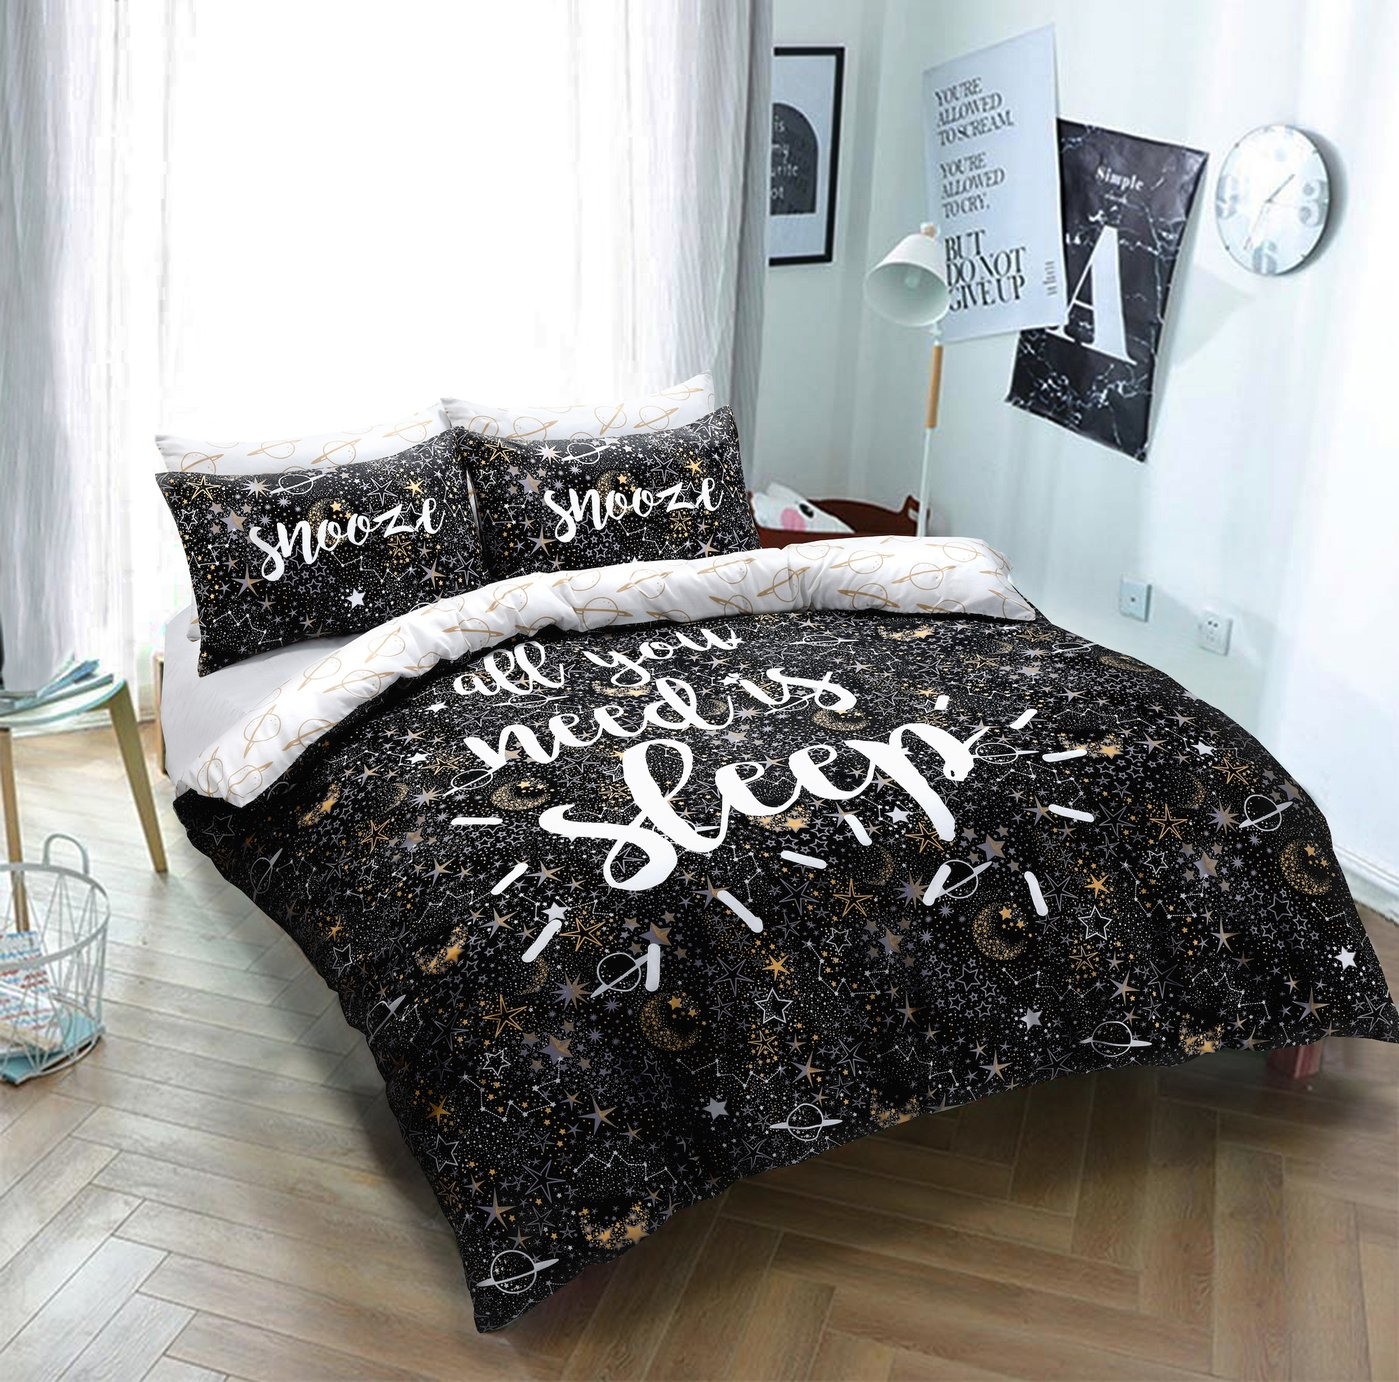 Argos Home Sleep Slogan Bedding Set - Kingsize